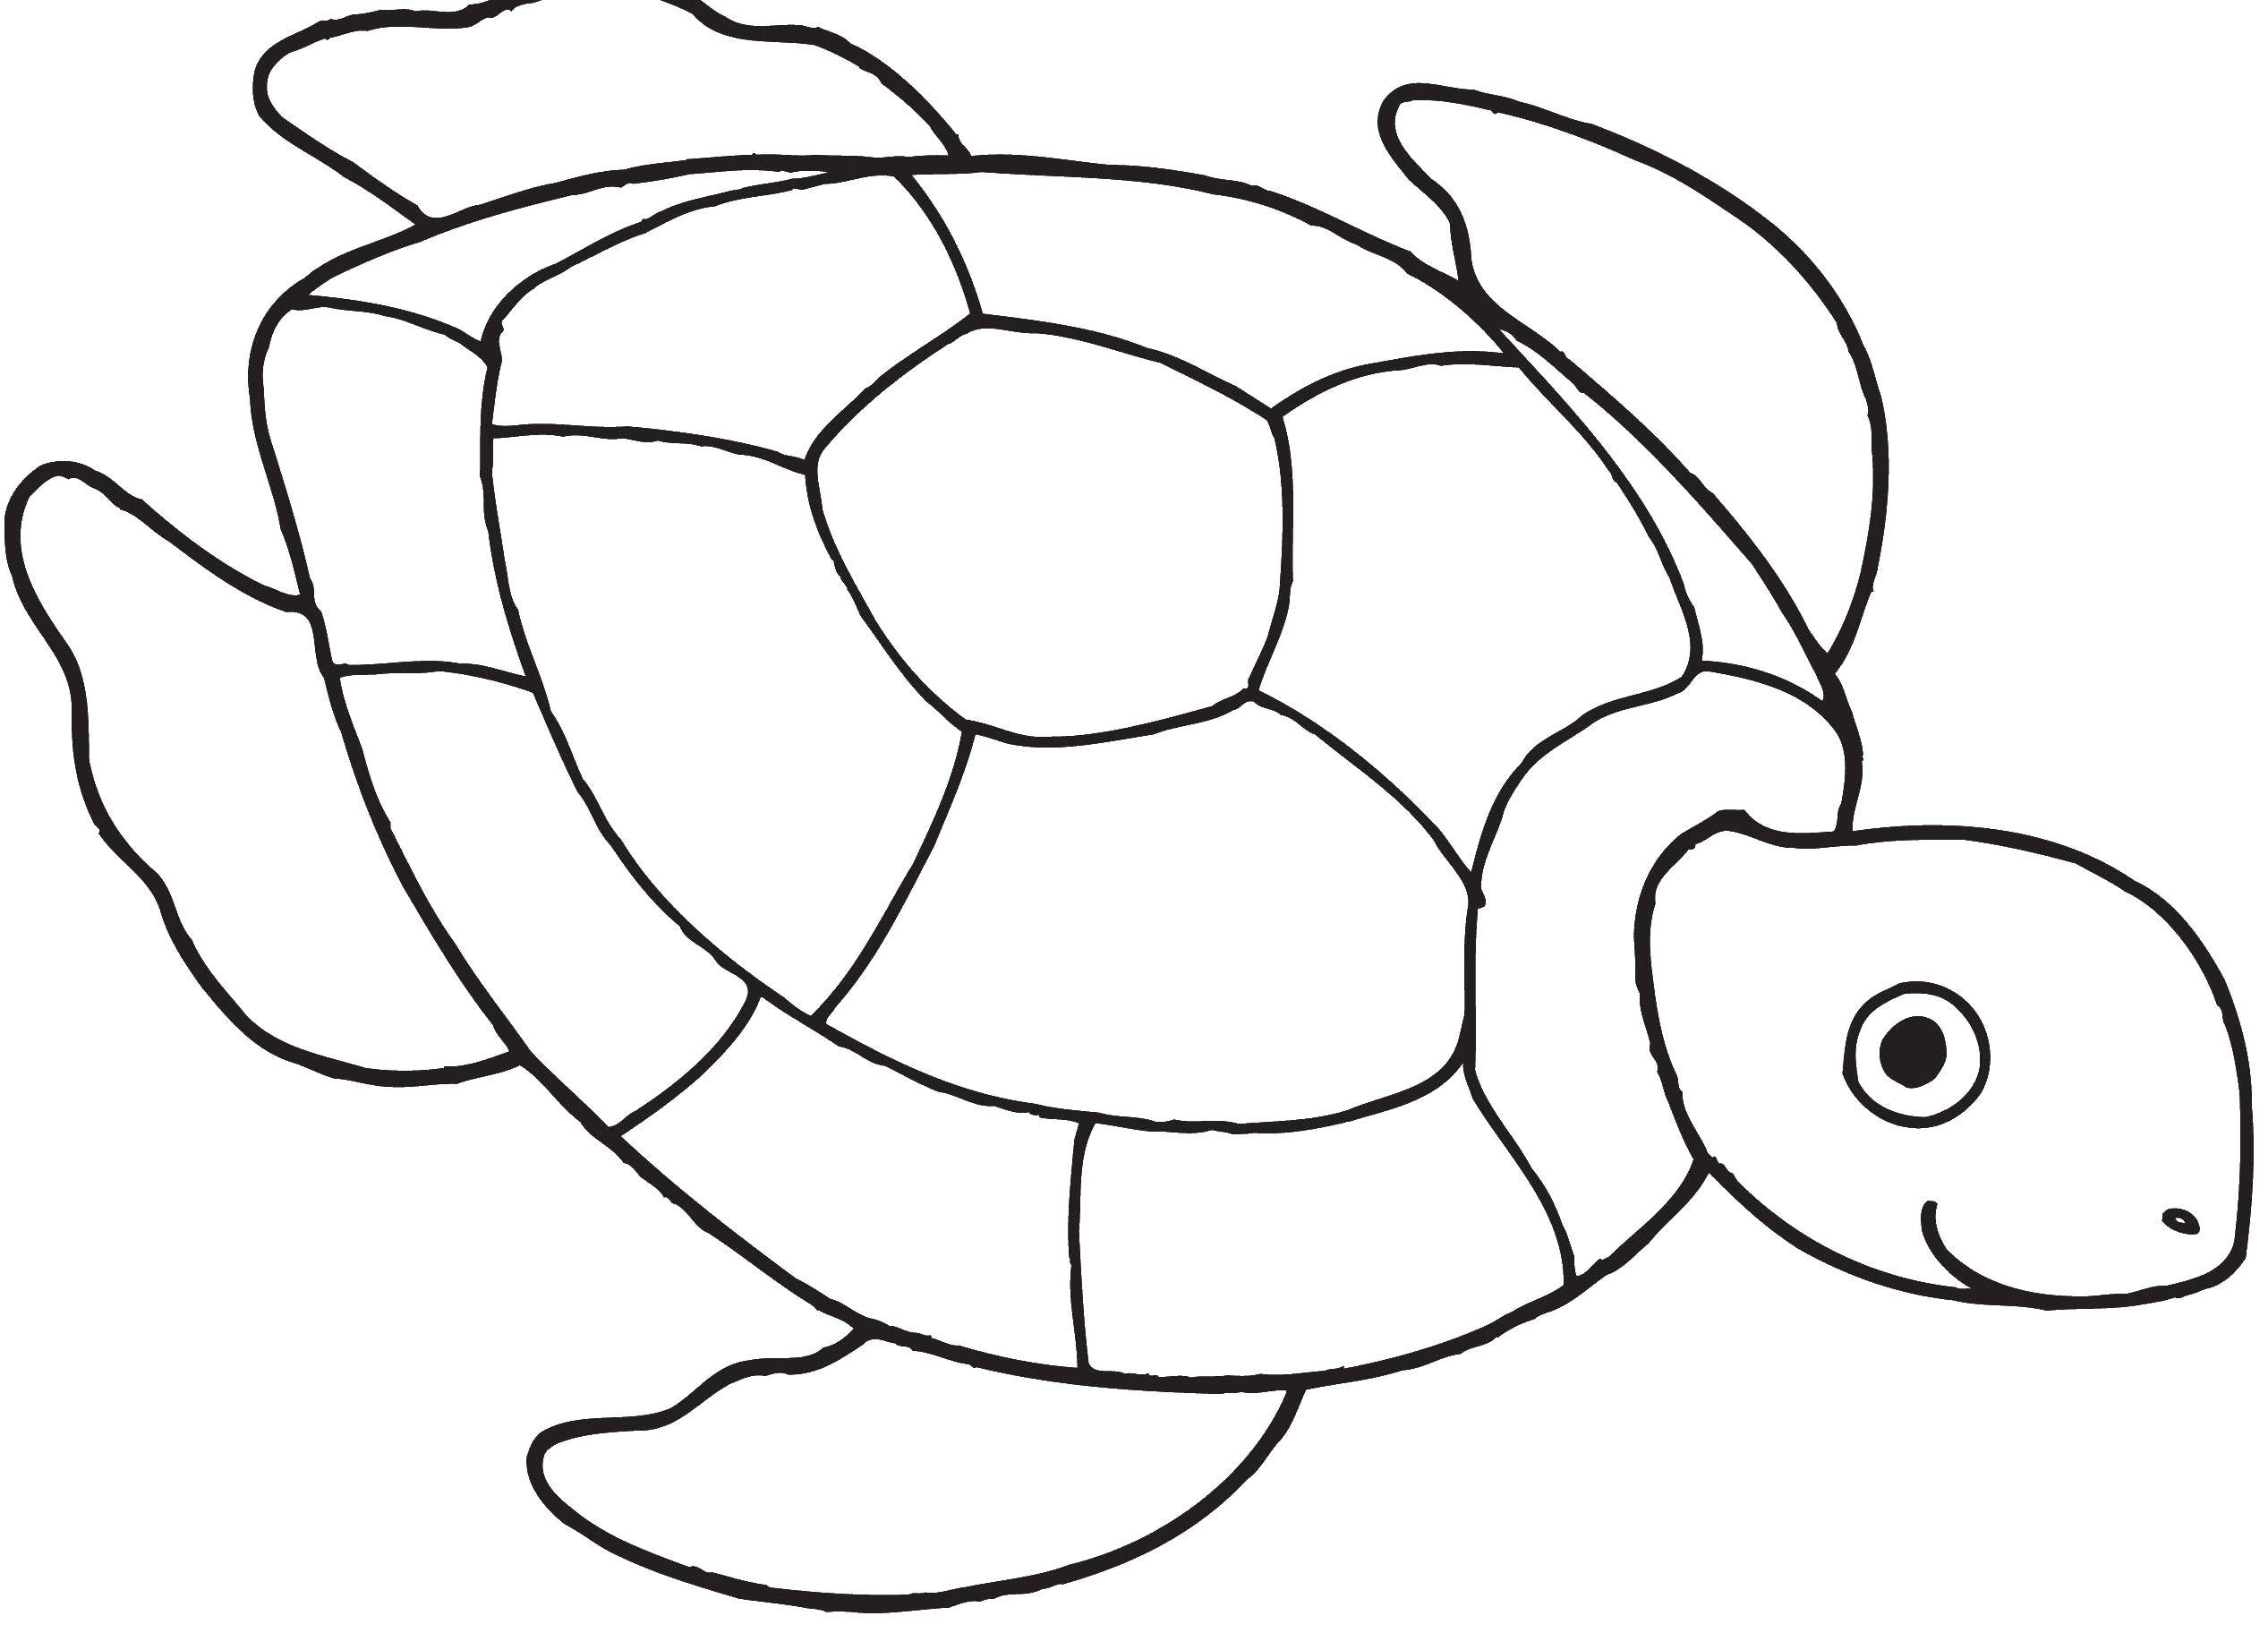 Coloring sheet teenage mutant ninja turtles Download .  Print